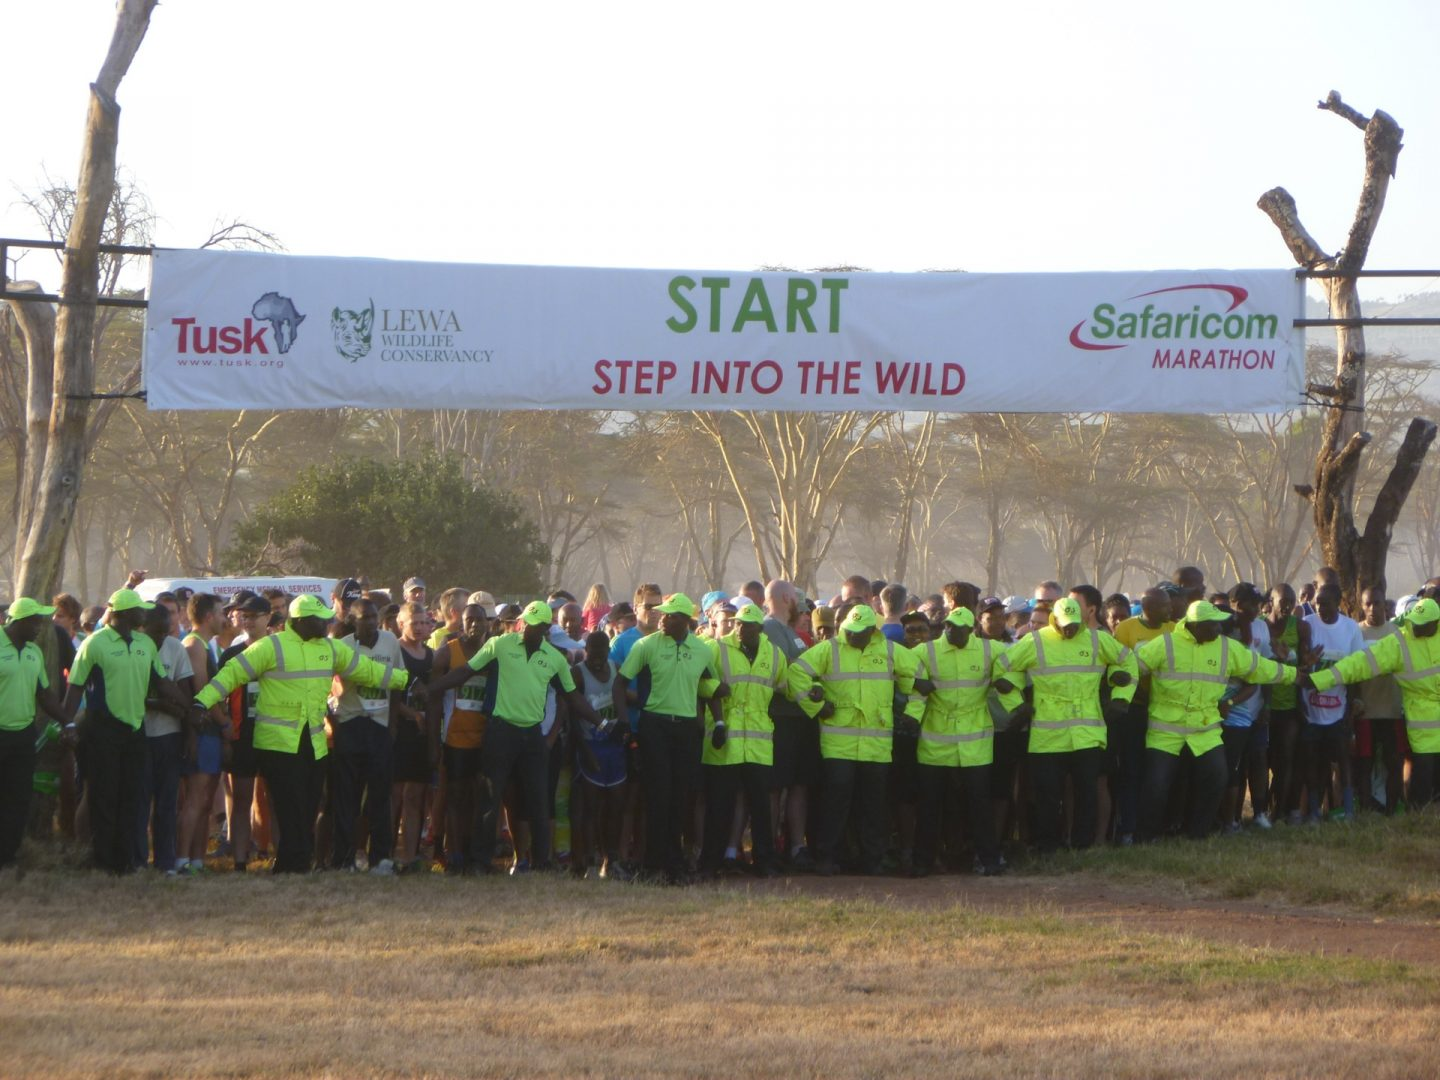 Safaricom Marathon Start Line Up